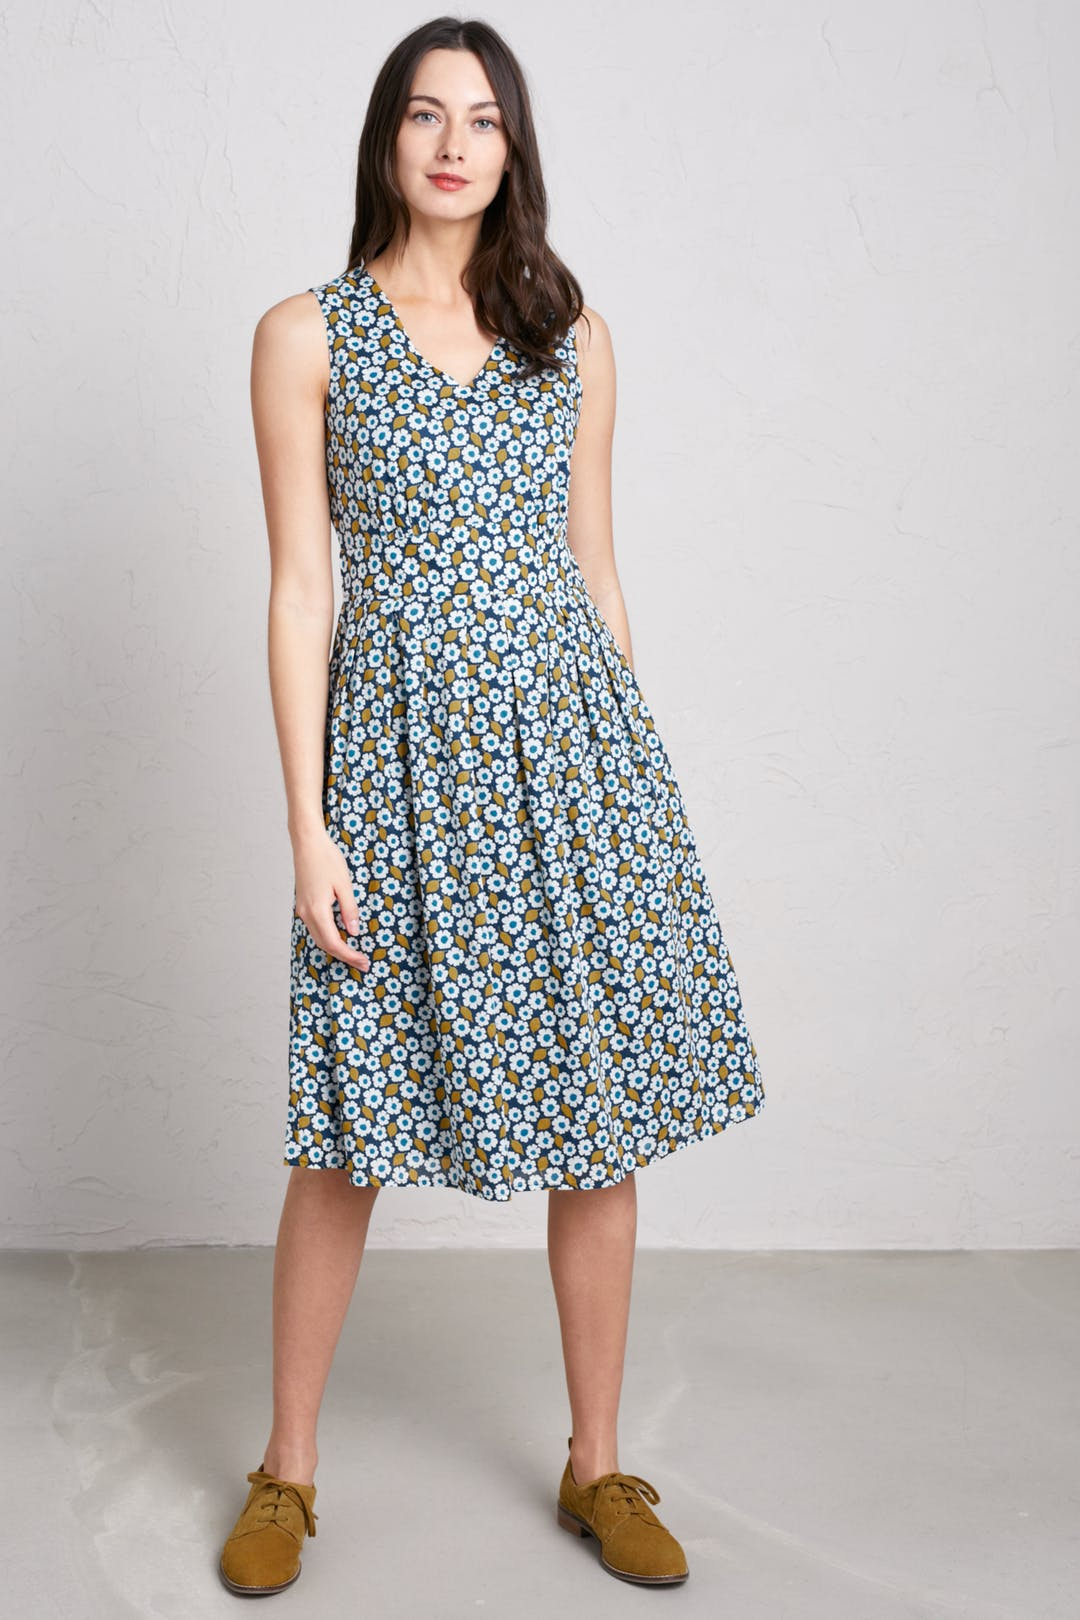 Seasalt Picnic Spot Dress.jpg